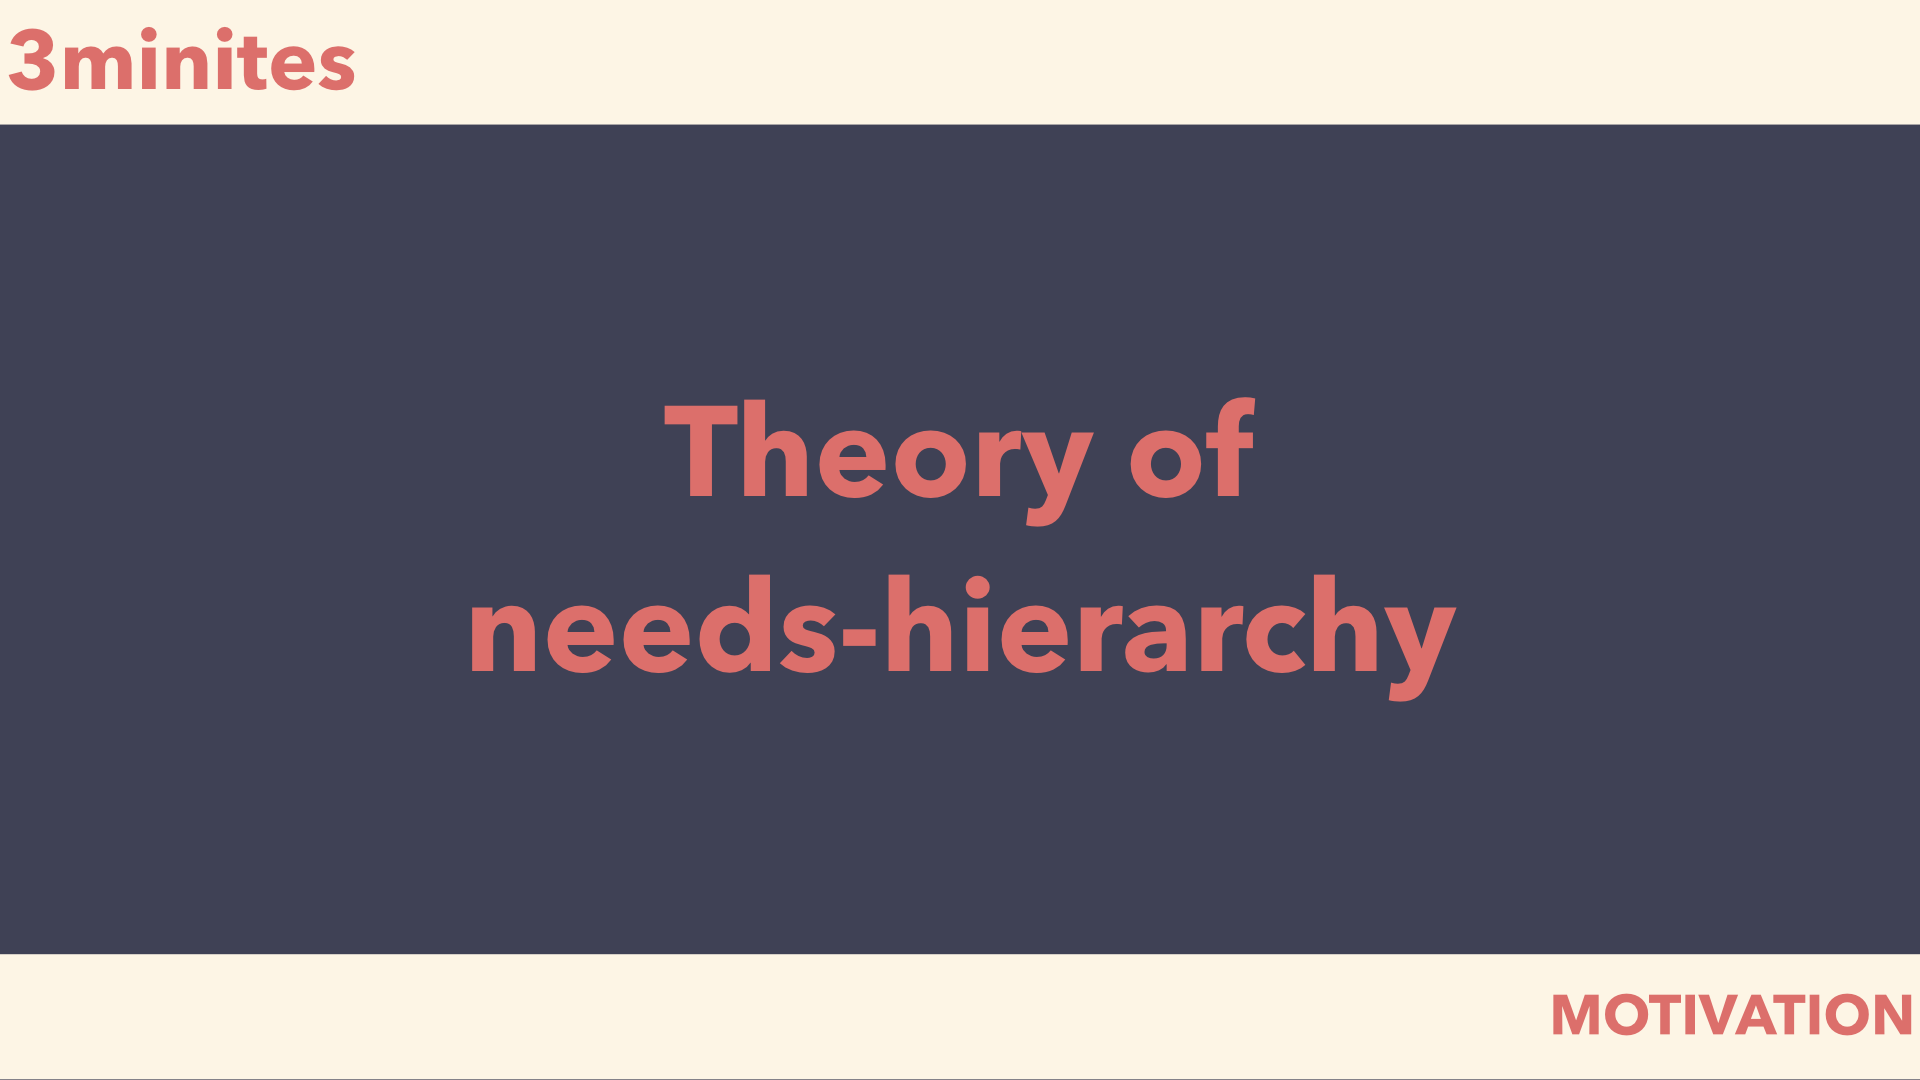 theory of needs-hierarchy